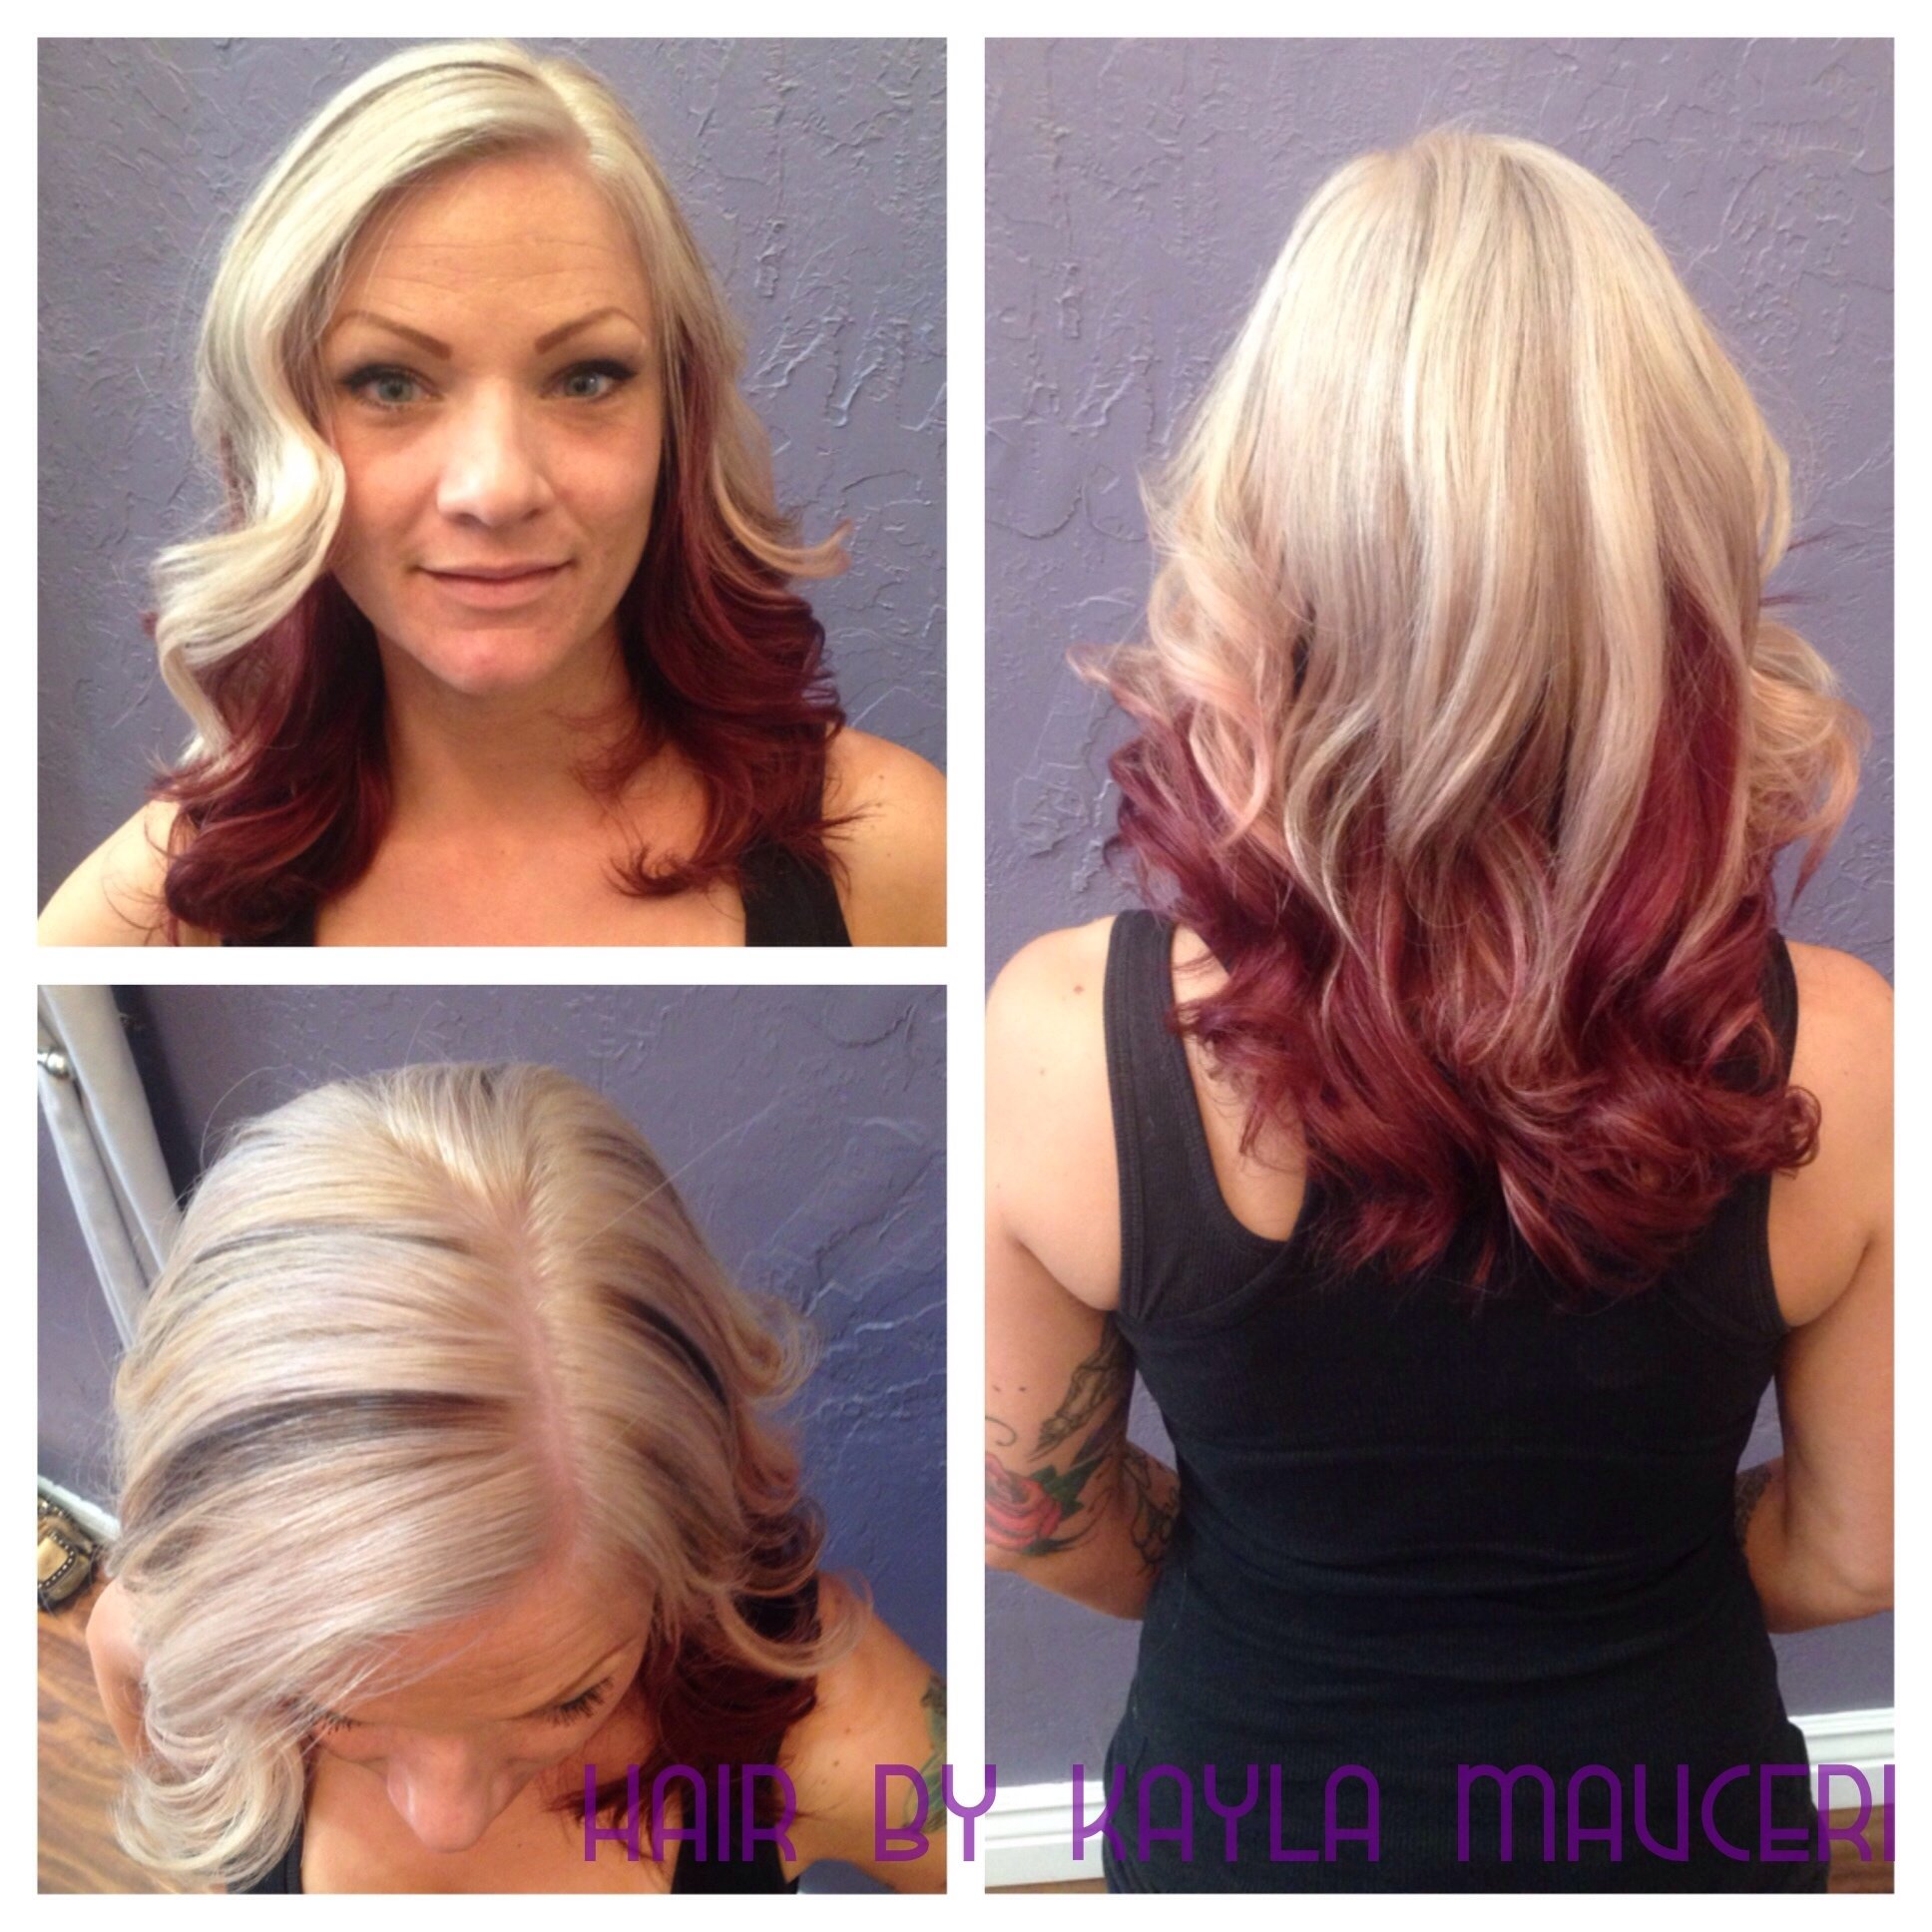 10 Elegant Blonde Two Tone Hair Color Ideas platinum blonde and red violet two tone hair hairkayla mauceri